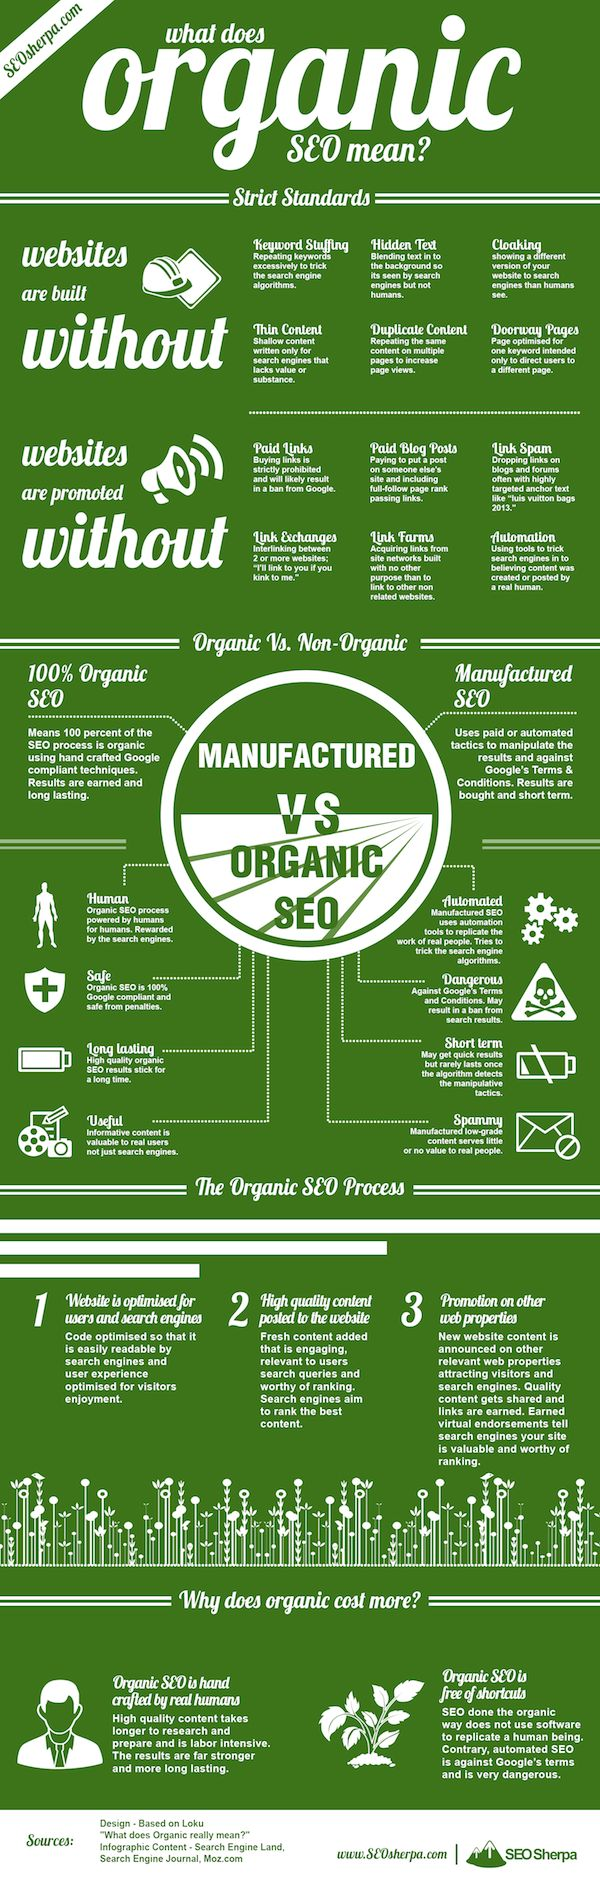 What does organic SEO mean? #SEO